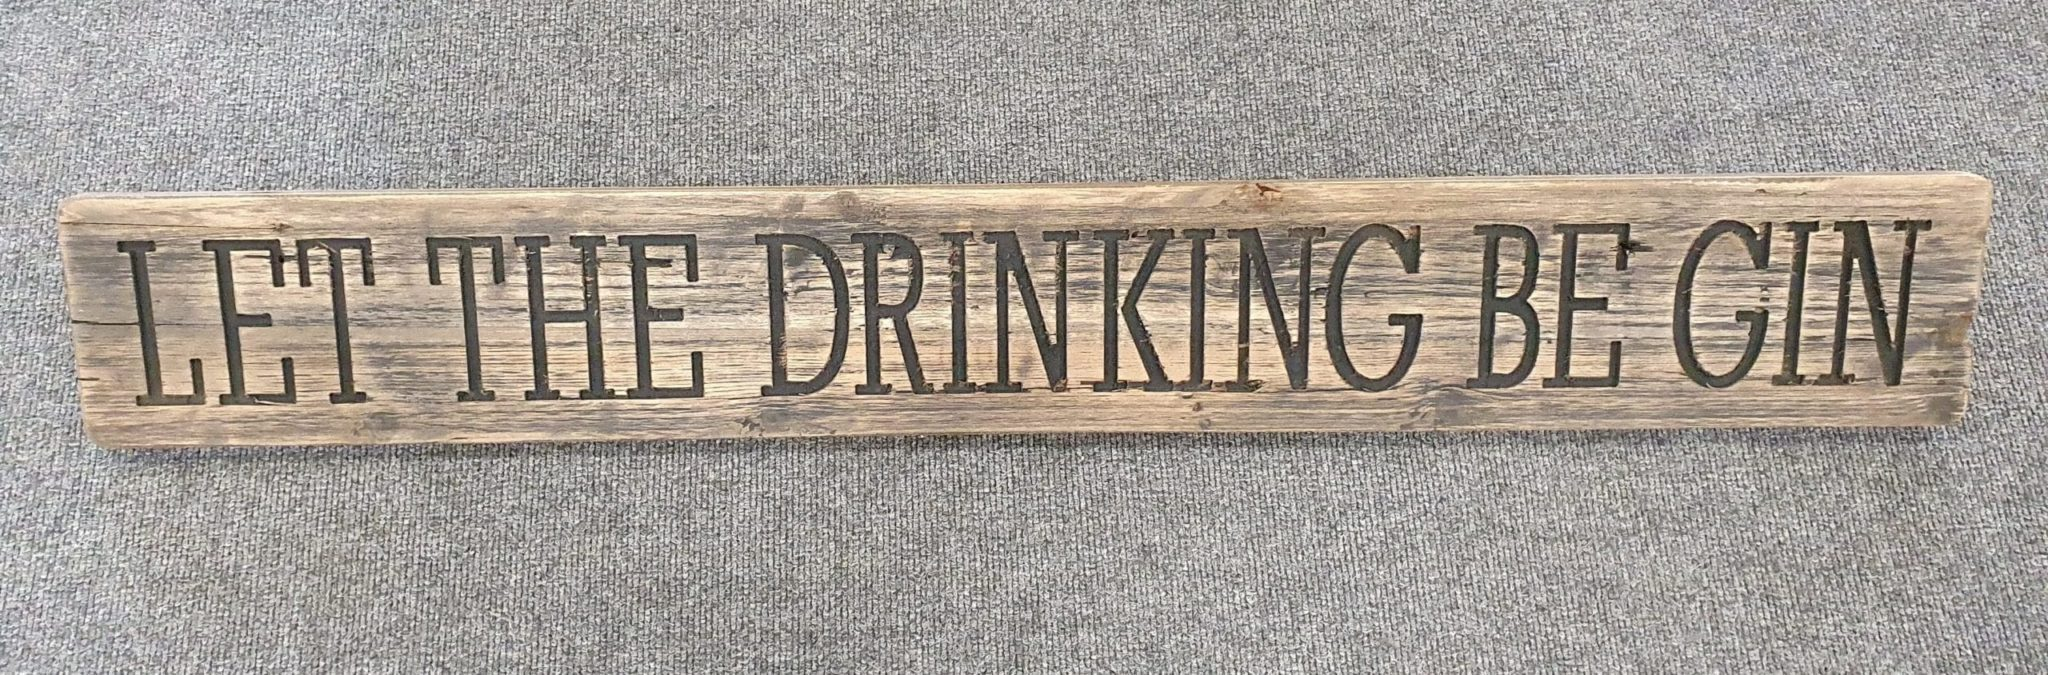 A Rustic Wooden Plaque quoting Let The Drinking Be Gin, engraved in capital letters